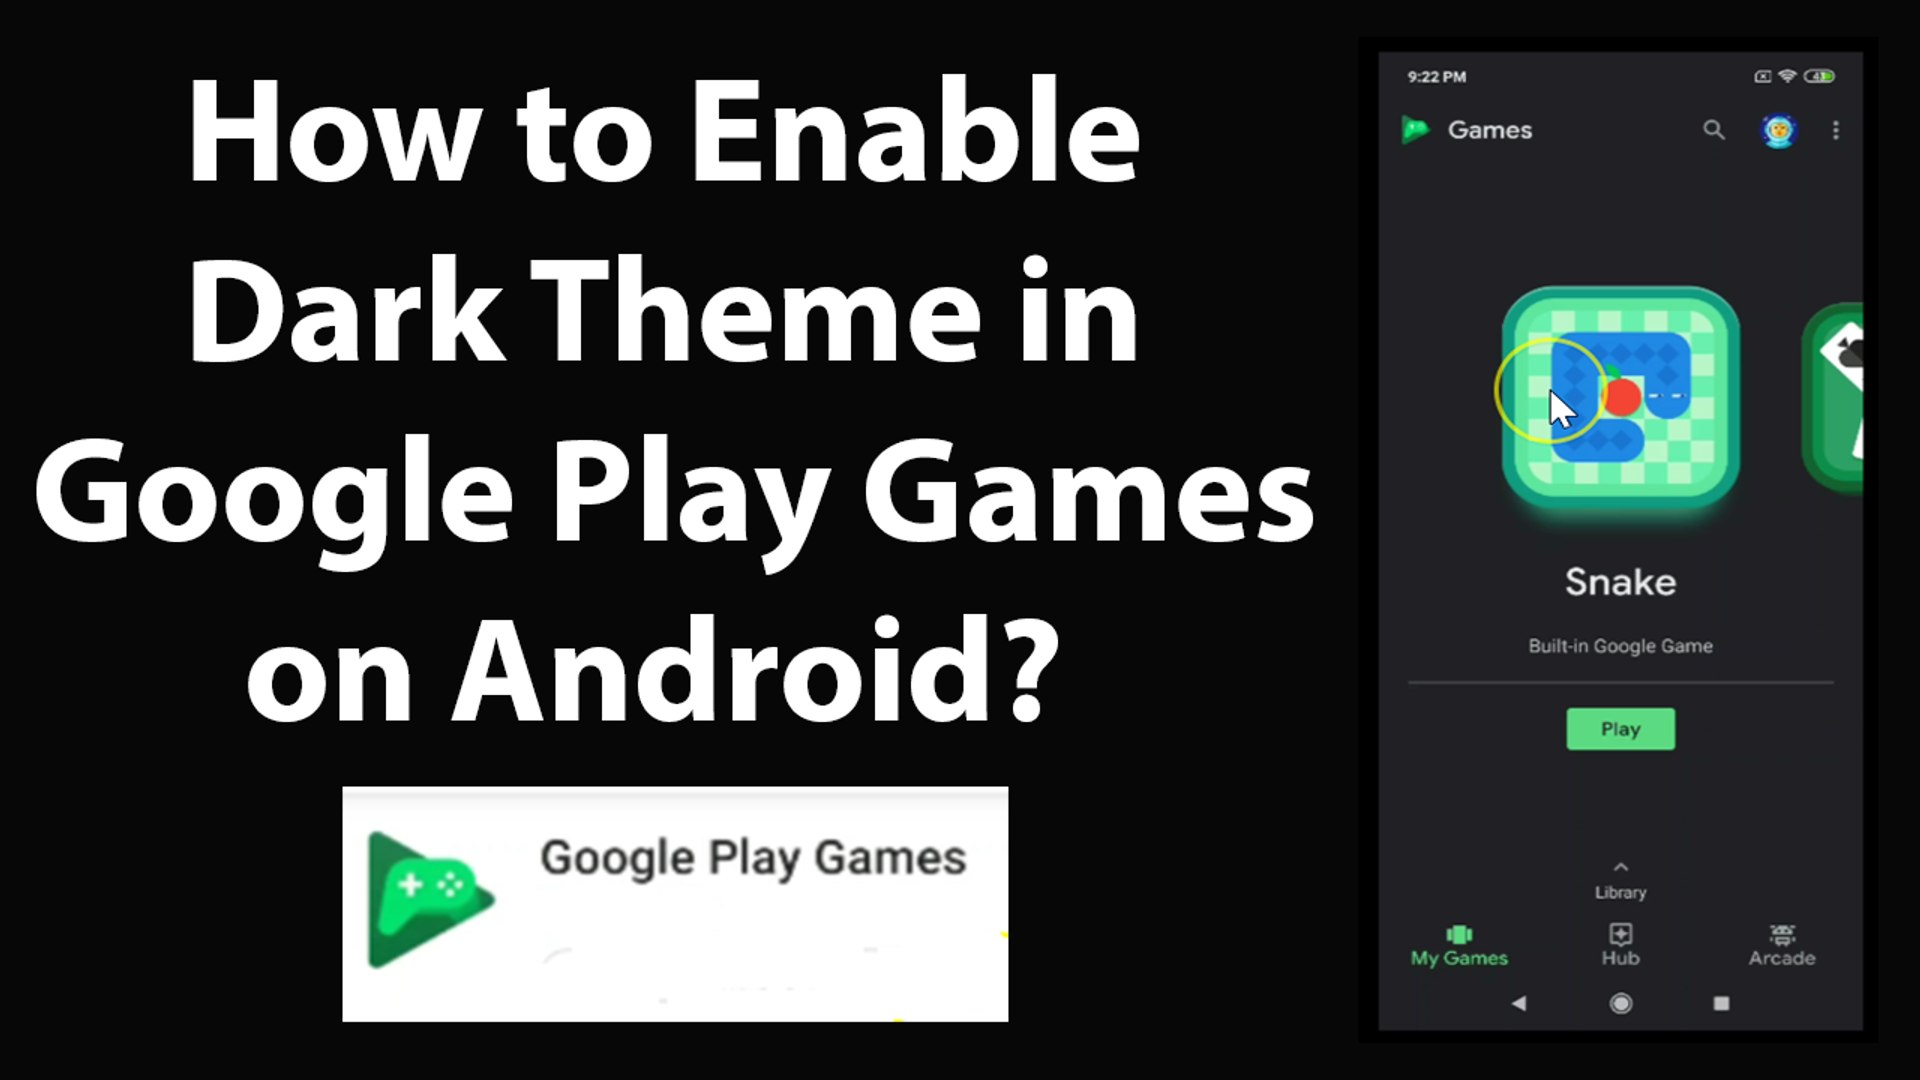 How to Enable Dark Theme in Google Play Games on Android?